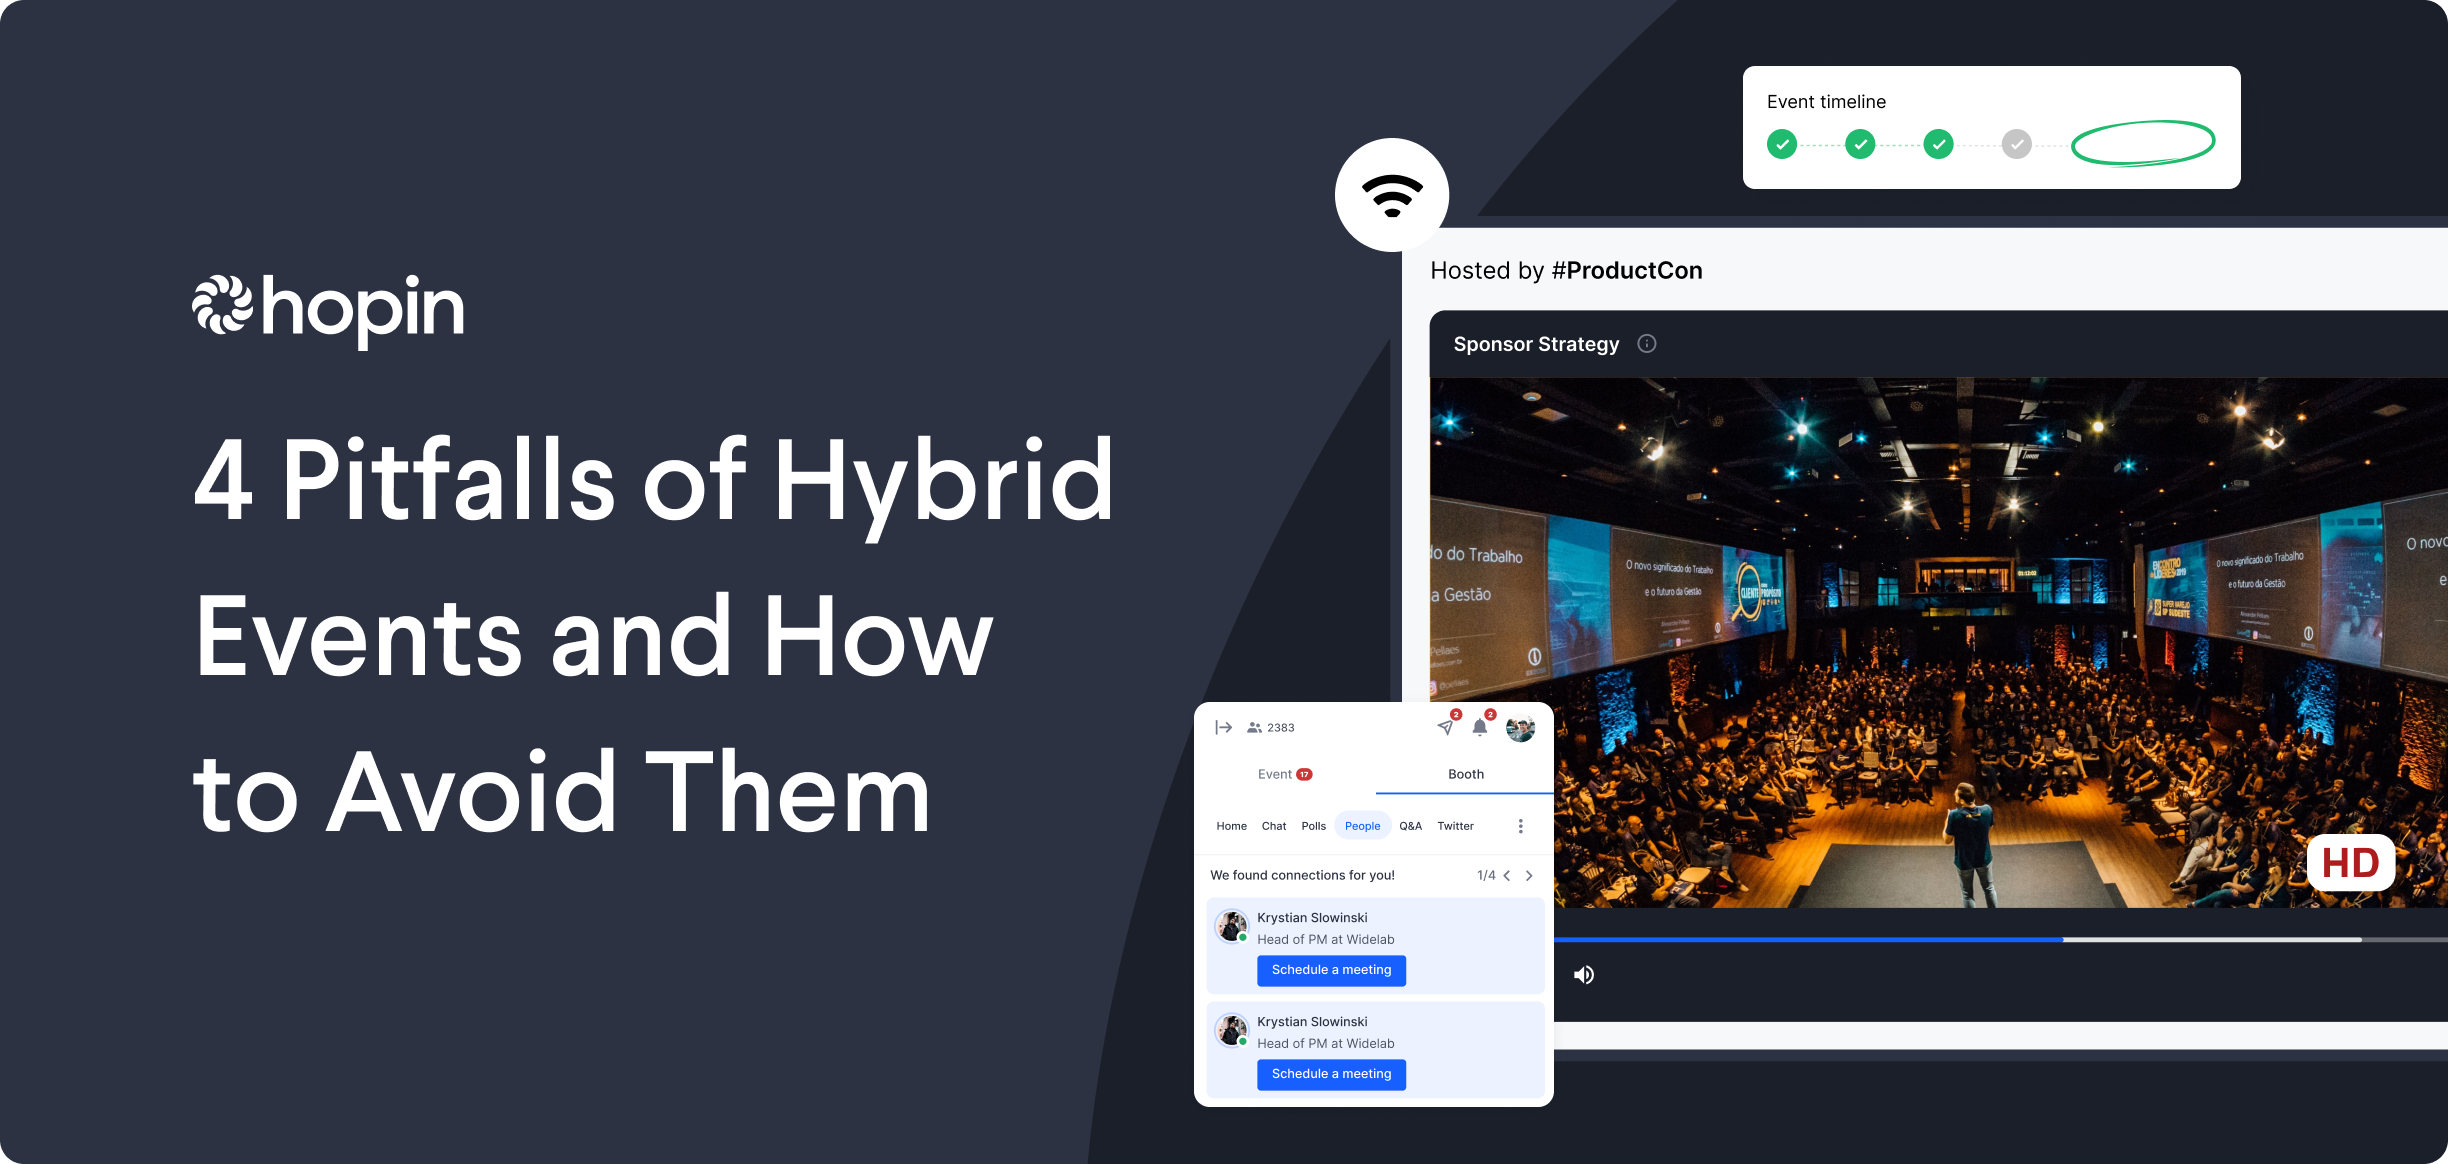 Hybrid events are mostly uncharted territory, but we spoke with three experienced organizers to hear about pitfalls they encountered – and how to avoid them.